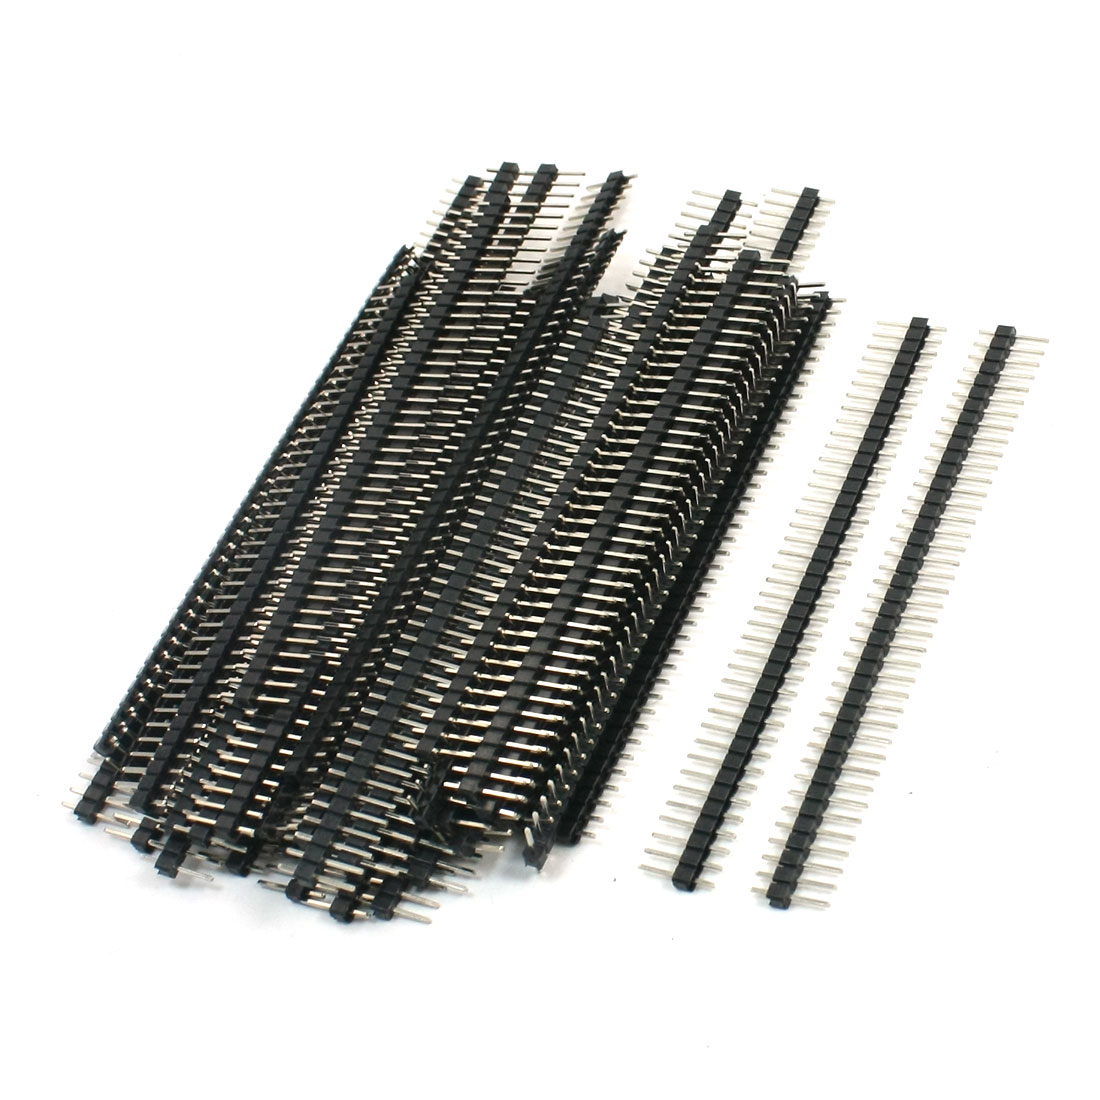 50Pcs Black 40 Pin 2.54mm Single Row Straight Male Pin Header Strip